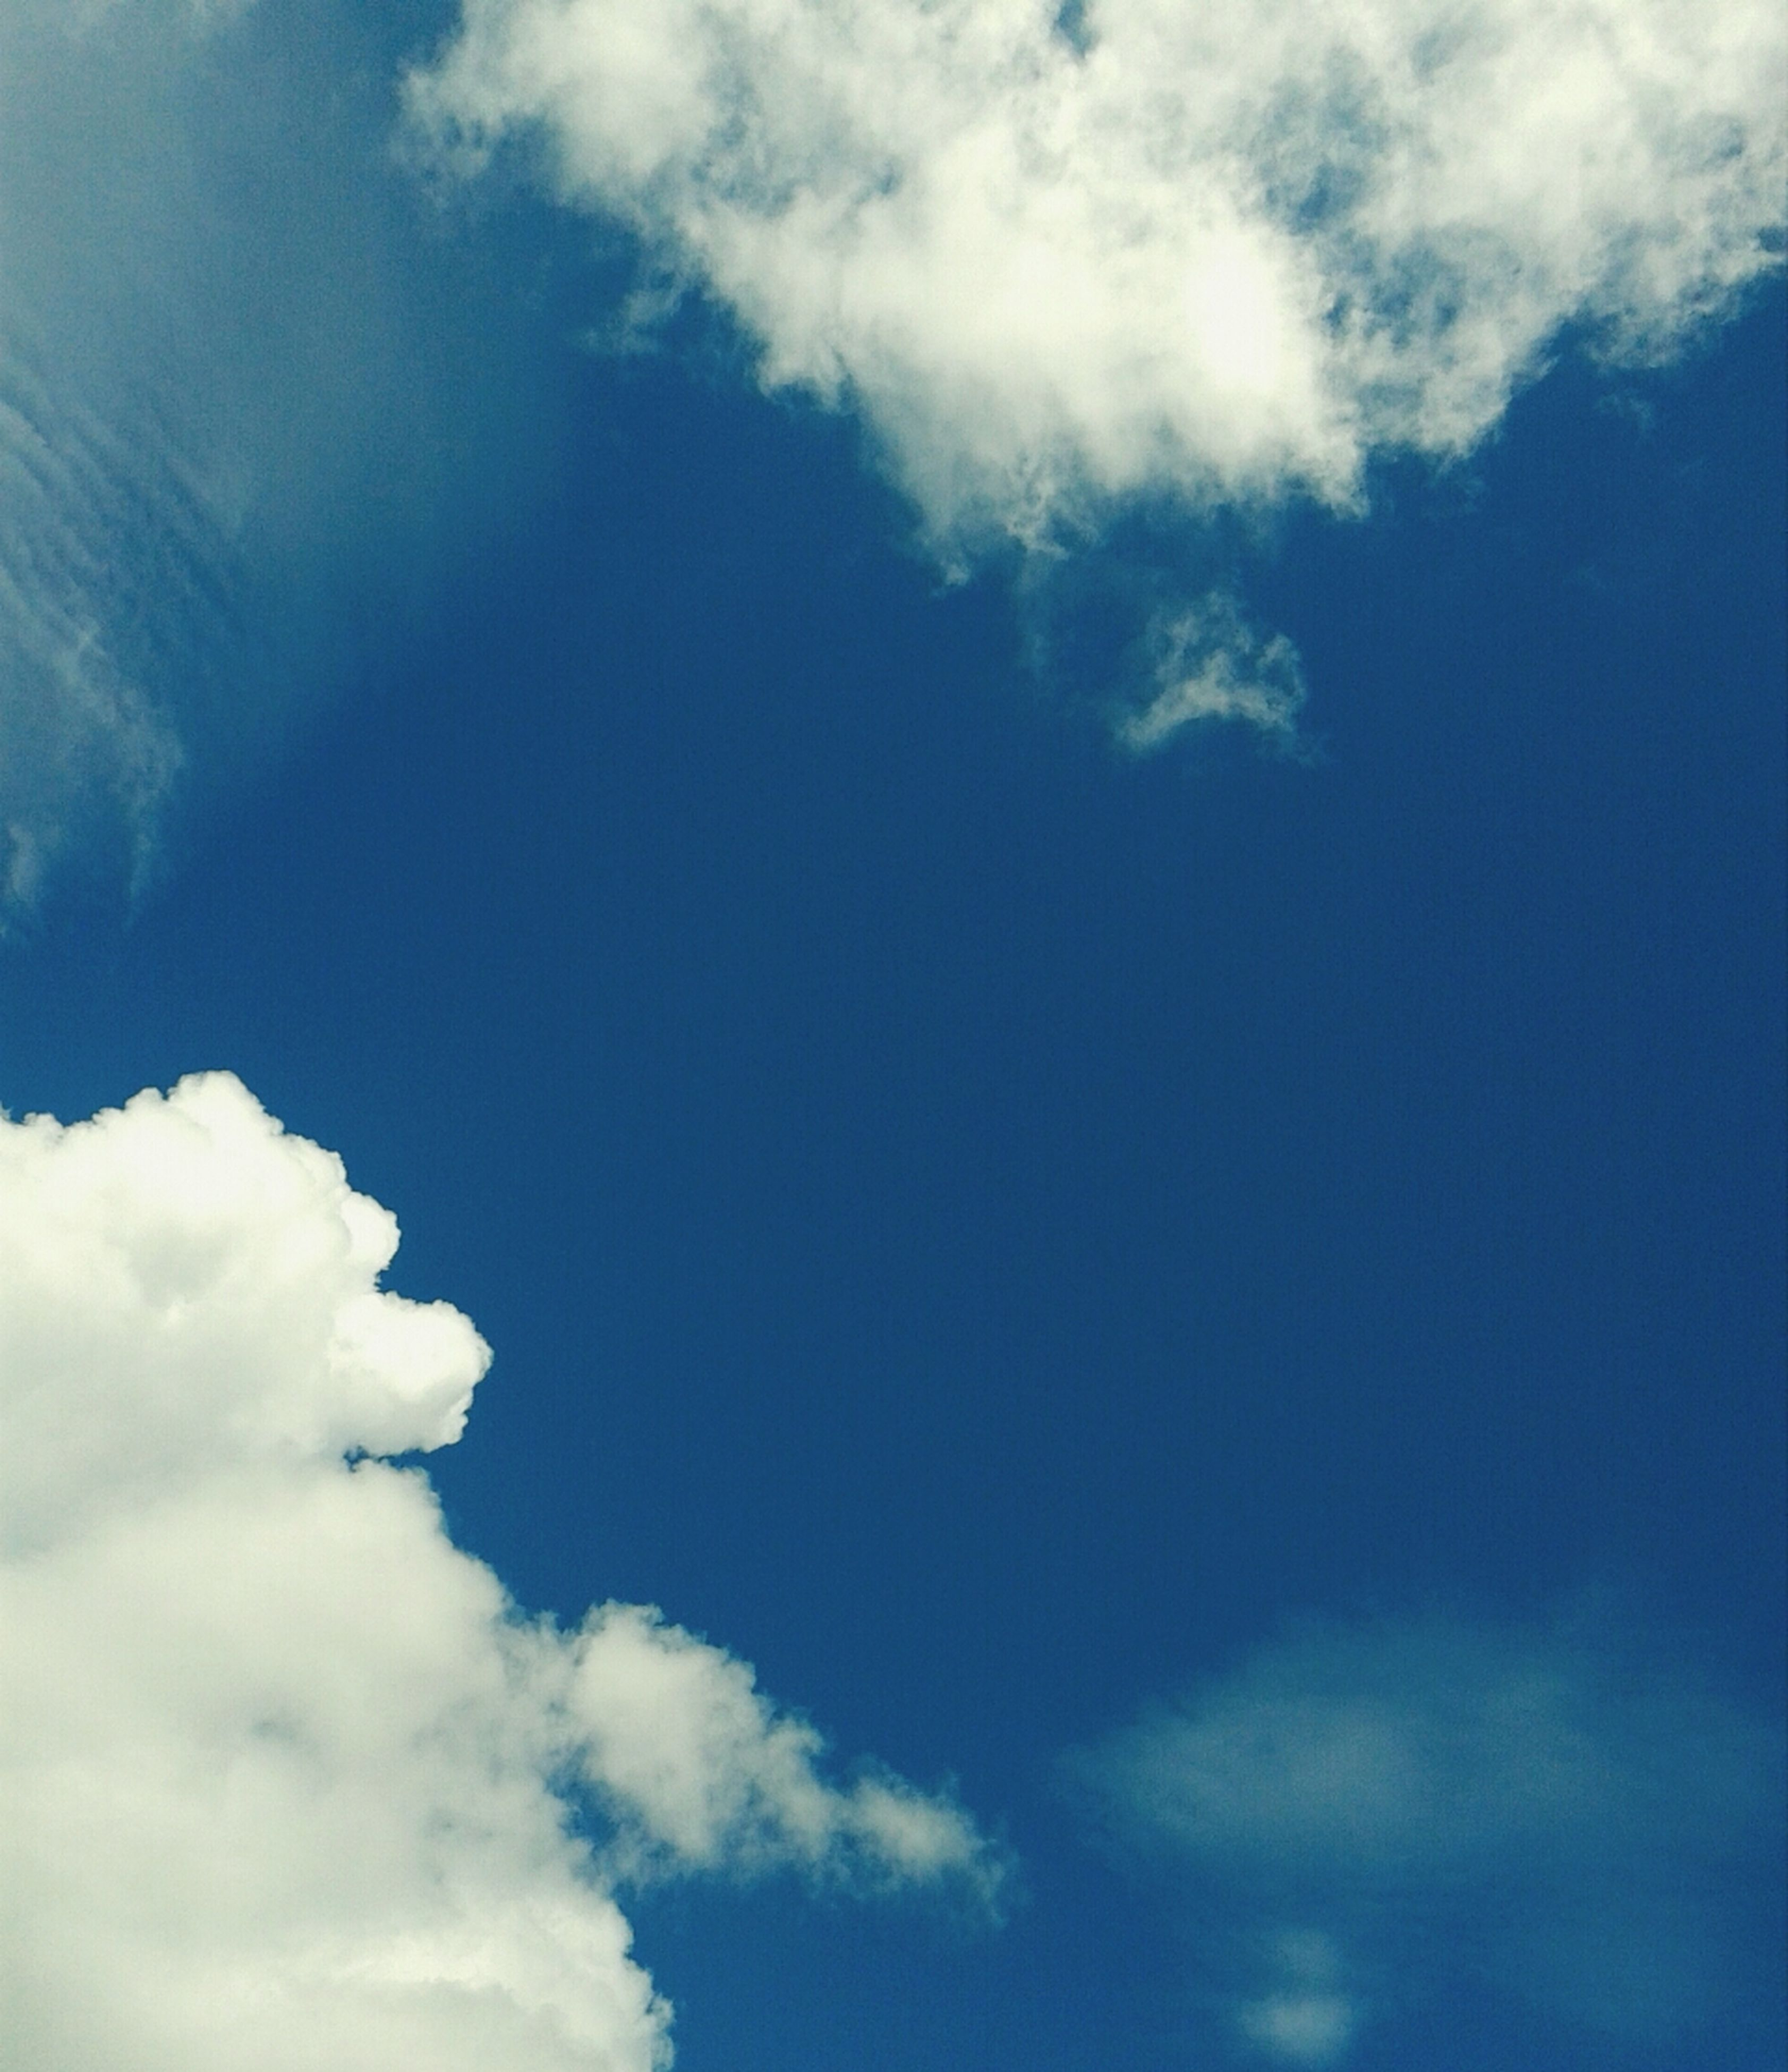 low angle view, sky, blue, cloud - sky, beauty in nature, sky only, tranquility, nature, cloud, scenics, cloudy, white color, cloudscape, tranquil scene, backgrounds, day, outdoors, no people, idyllic, full frame